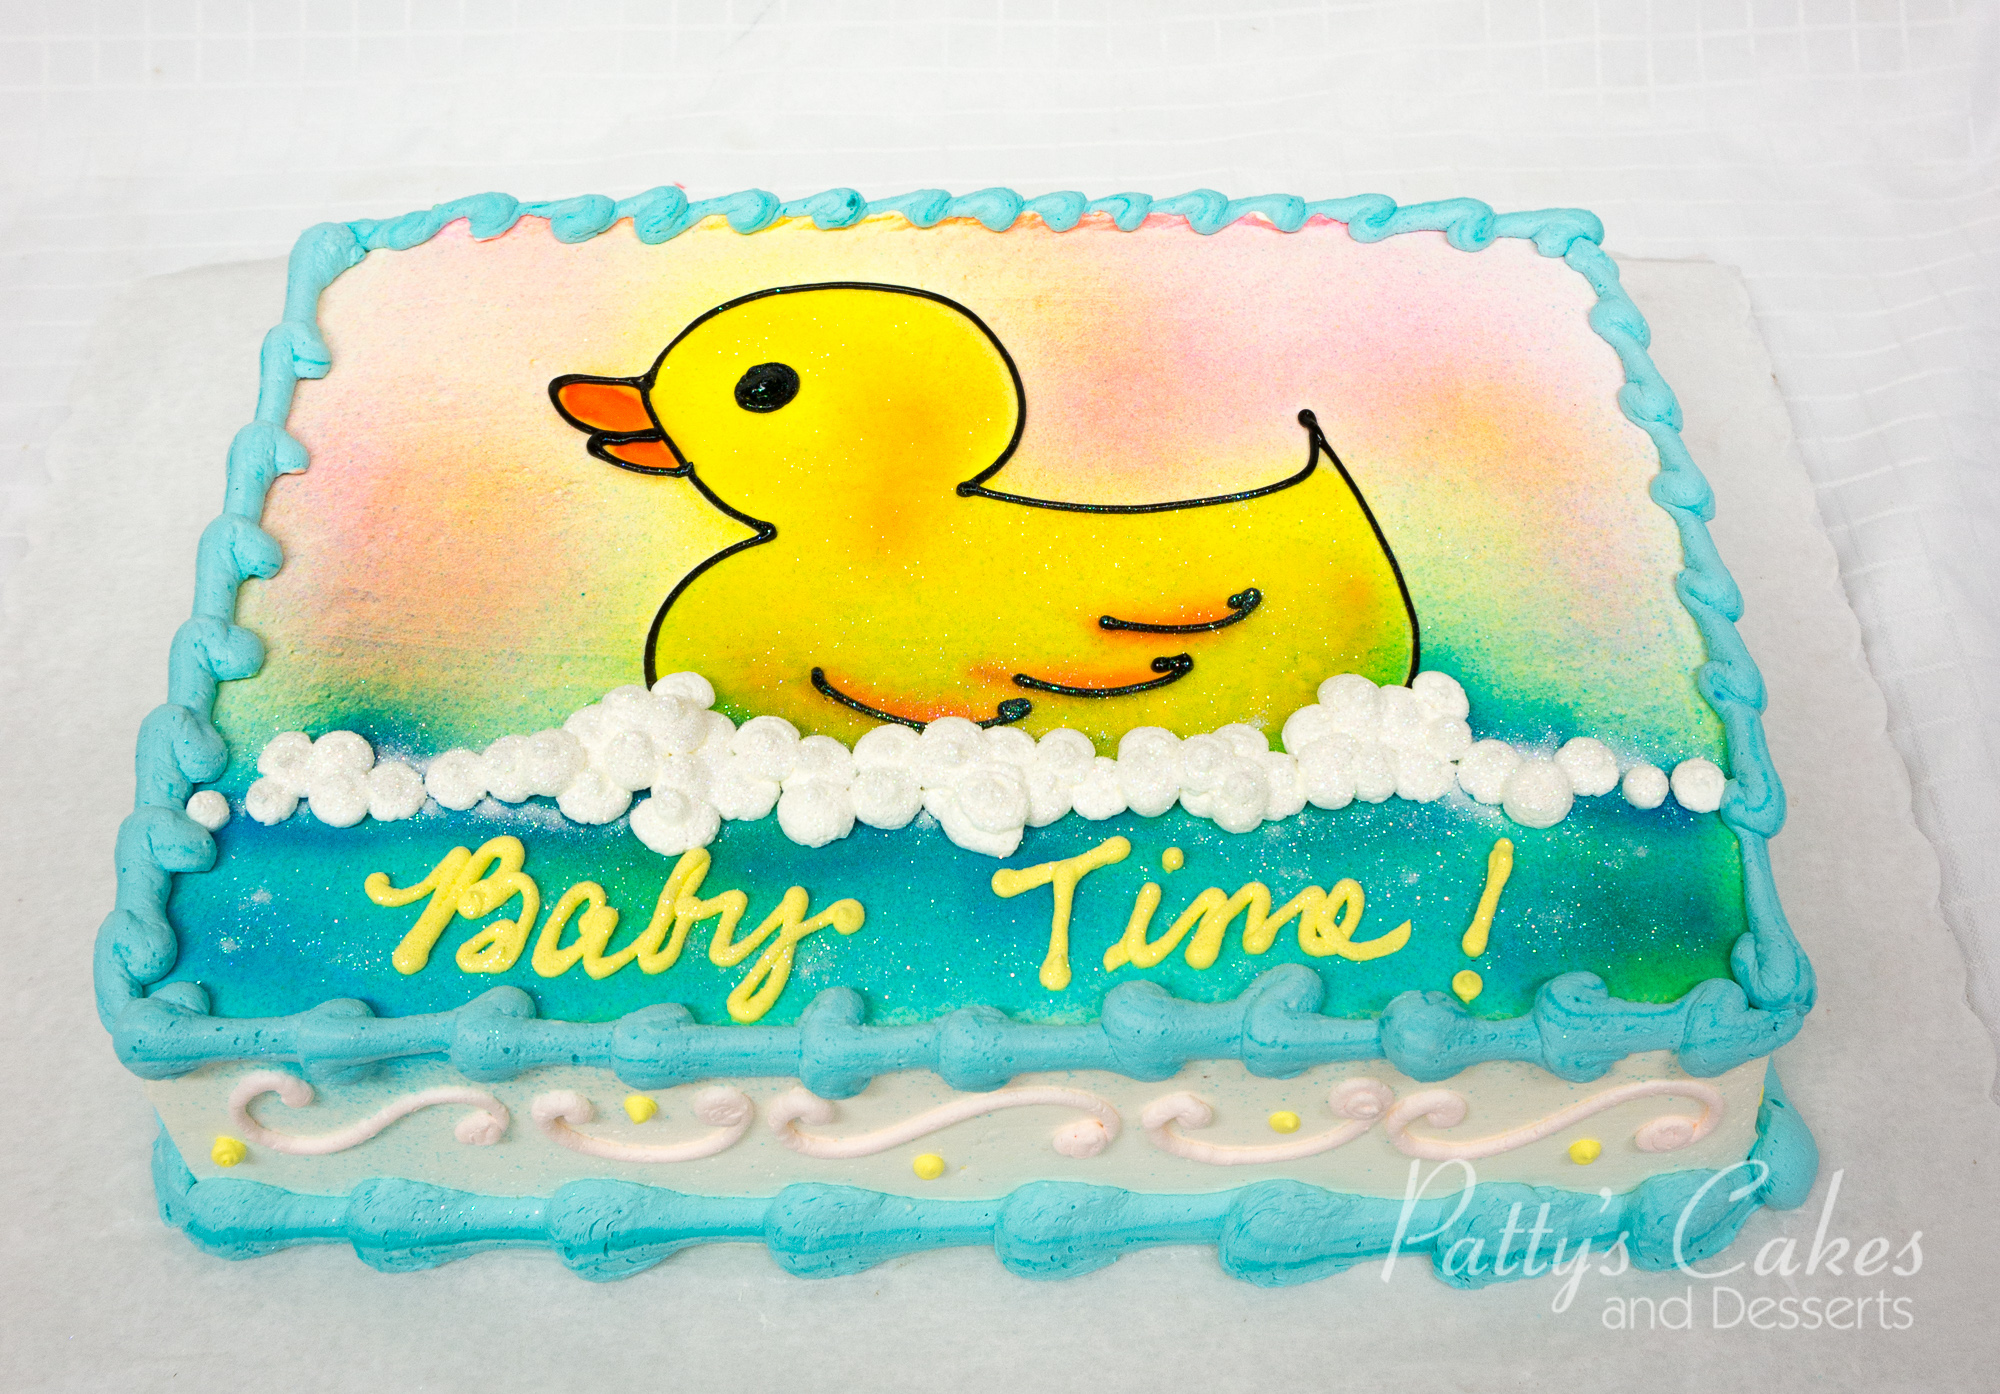 of a rubber duck baby shower cake Patty s Cakes and Desserts